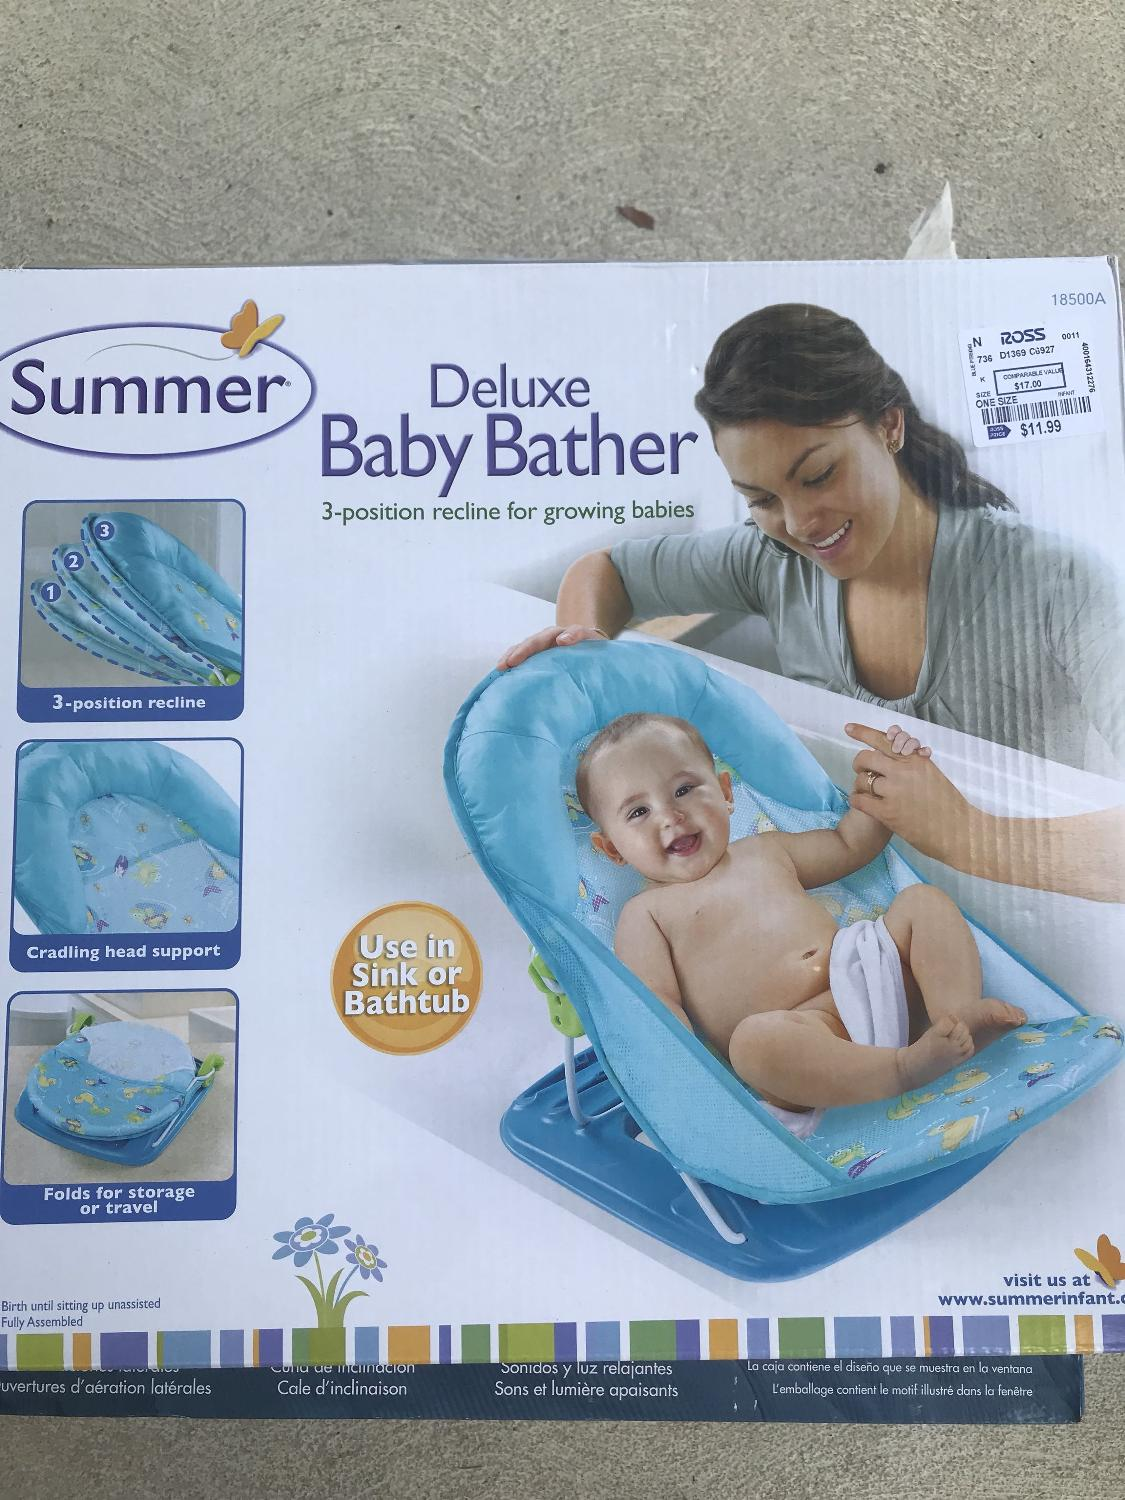 Best Baby Bather for sale in Mobile, Alabama for 2018